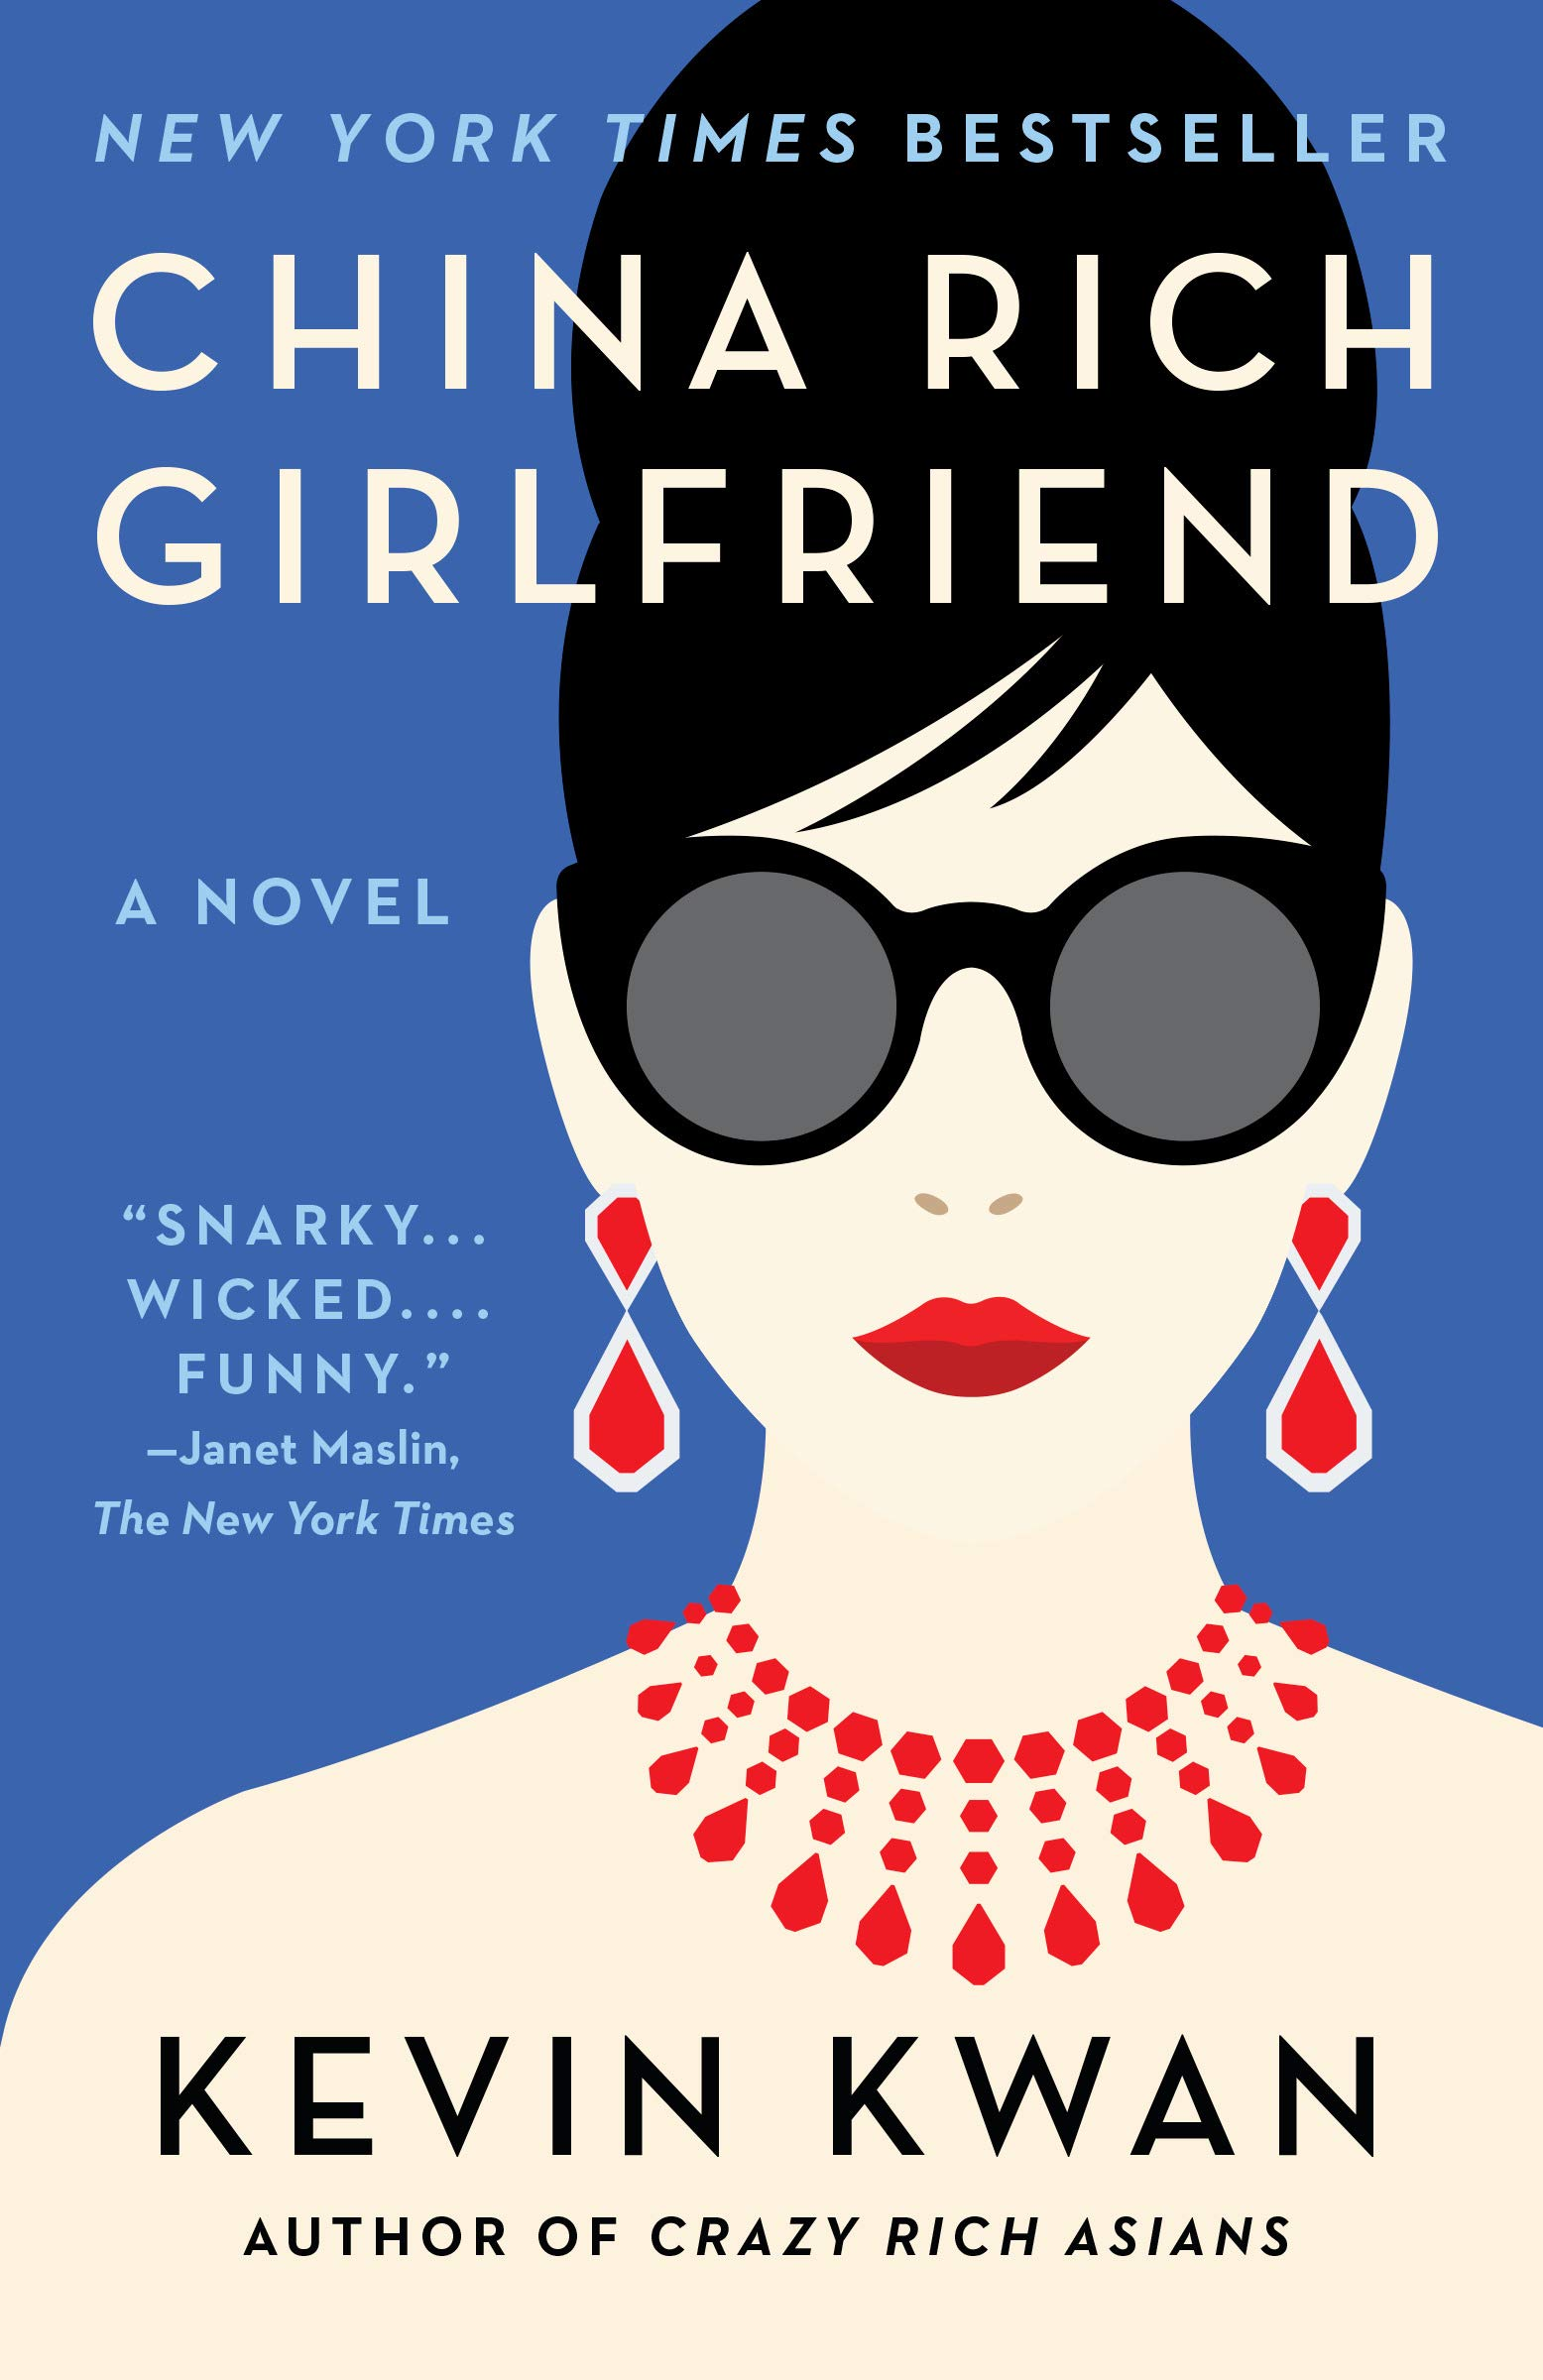 10. China Rich Girlfriend by Kevin Kwan - (Knopf Doubleday Publishing Group)